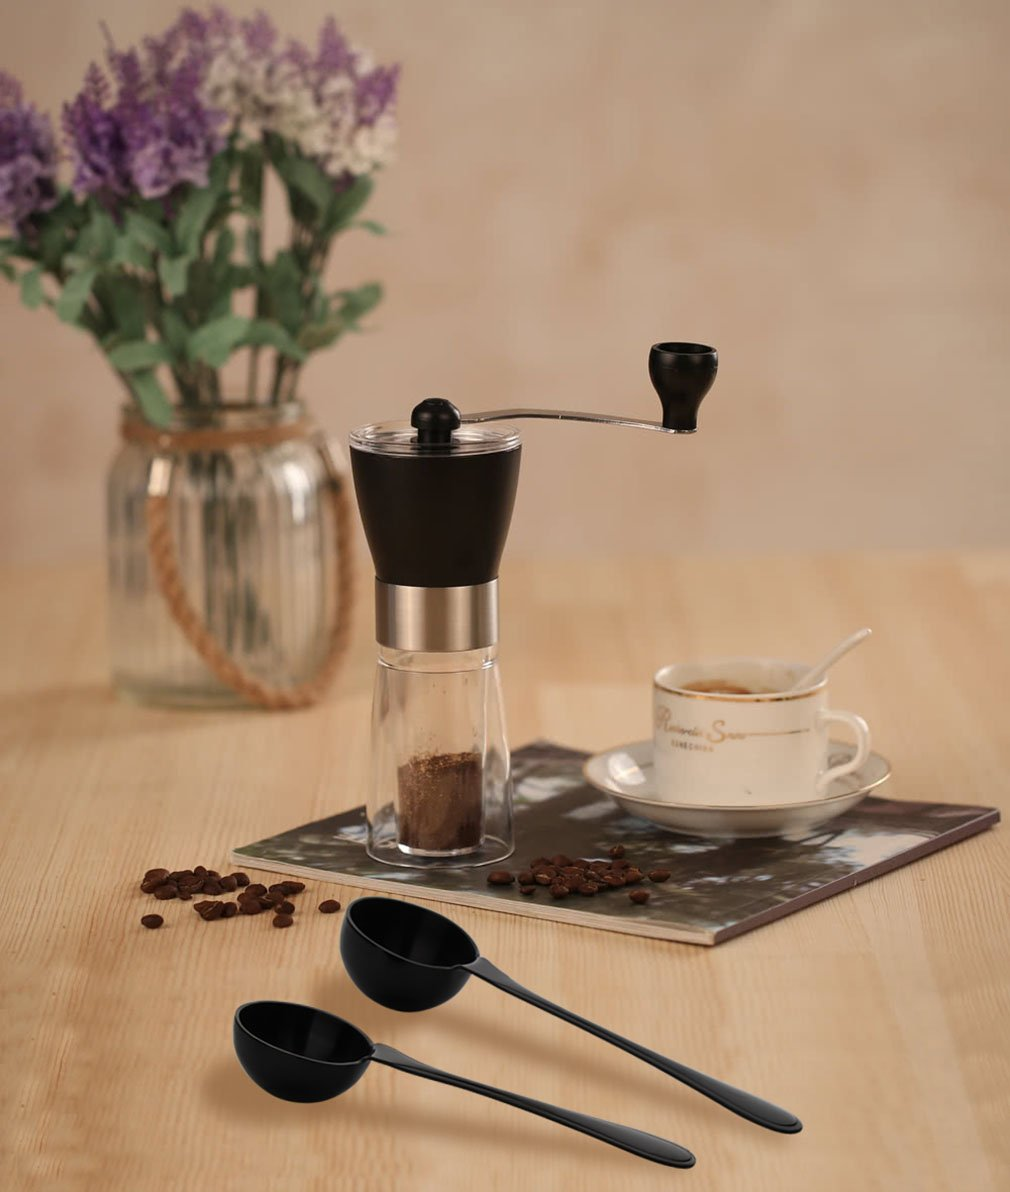 Coffee Scoop Black 18/10 Stainless Steel 4 Piece Set of 2 - (1&2 Tablespoon, 15ml and 30ml) Long Handled Measuring Spoon for Coffee Tea Espresso Sugar Flour and More, 1 Tbsp & 2 Tbsp by Onlycooker (Image #7)